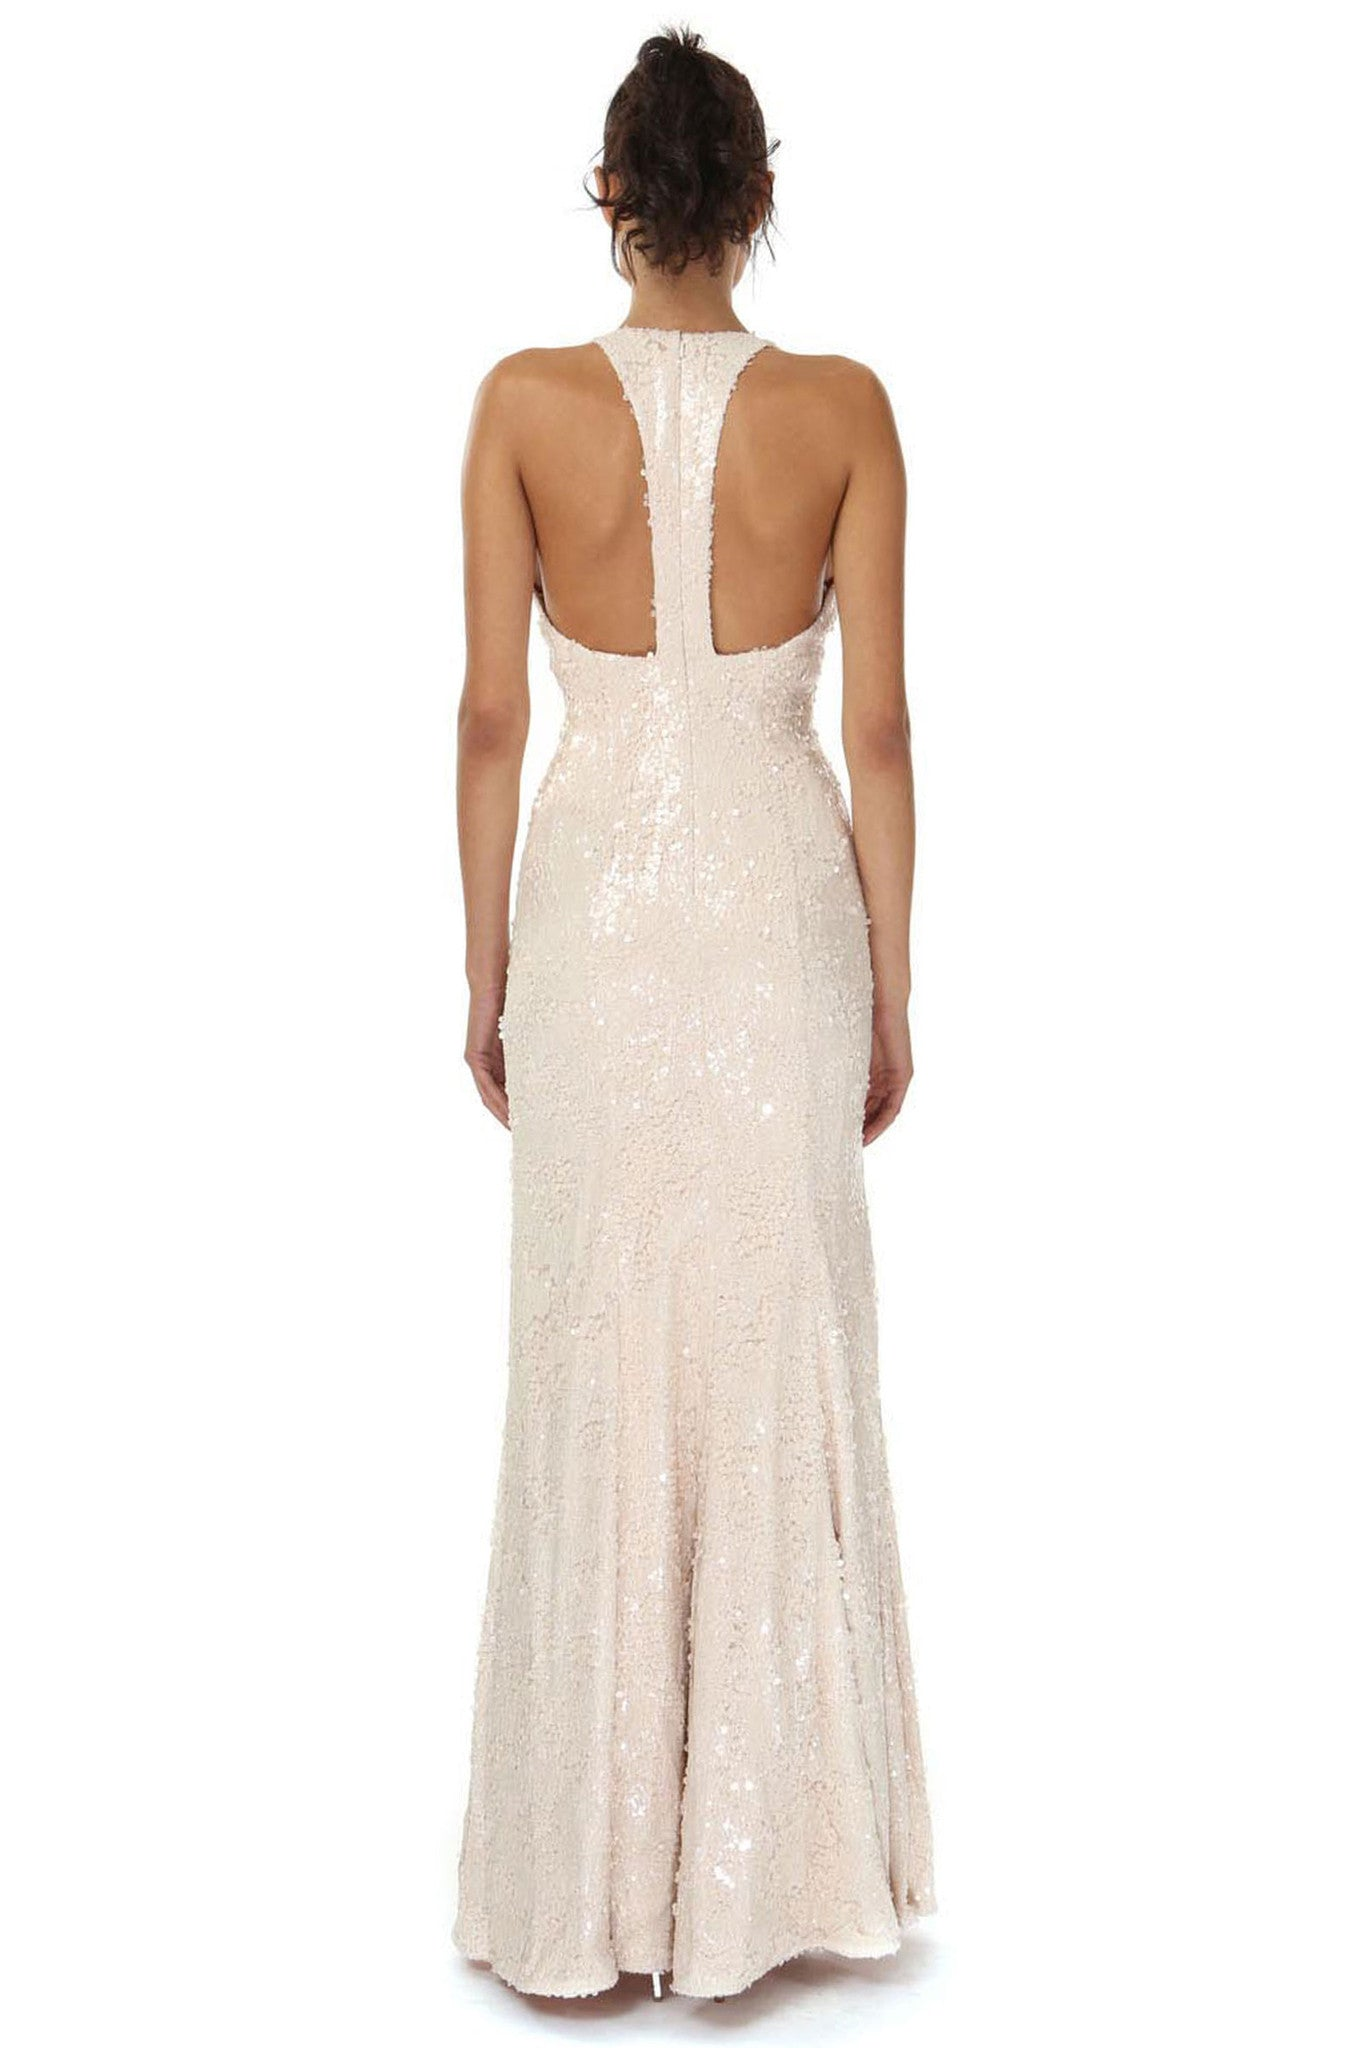 Jay Godfrey Nude Sequin Deep-V Gown - Back View